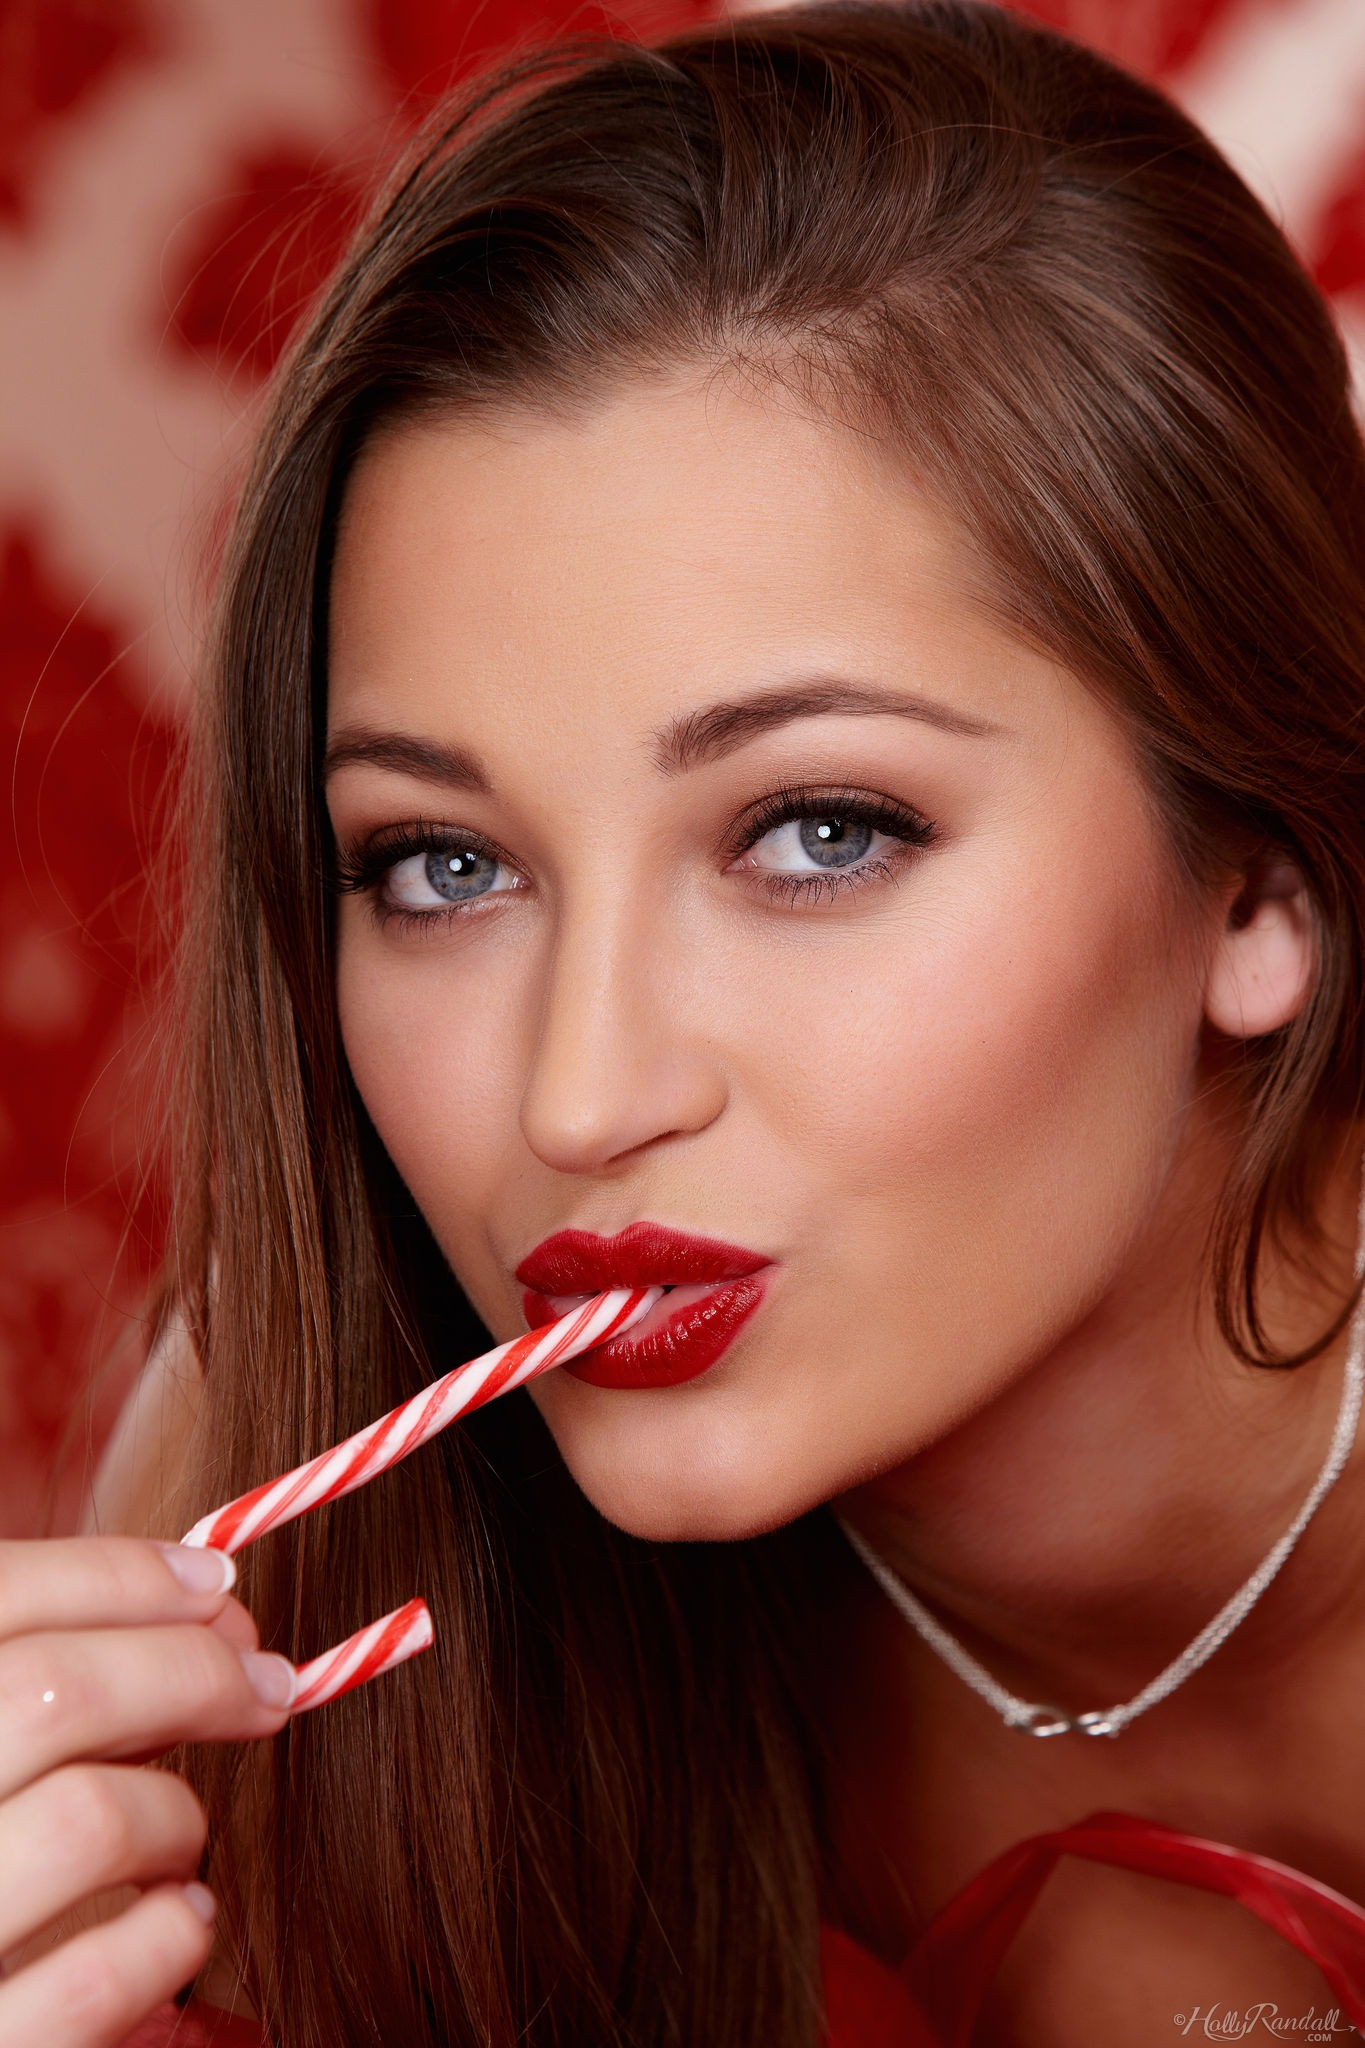 Dani Daniels with Candy Cane for Holly Randall